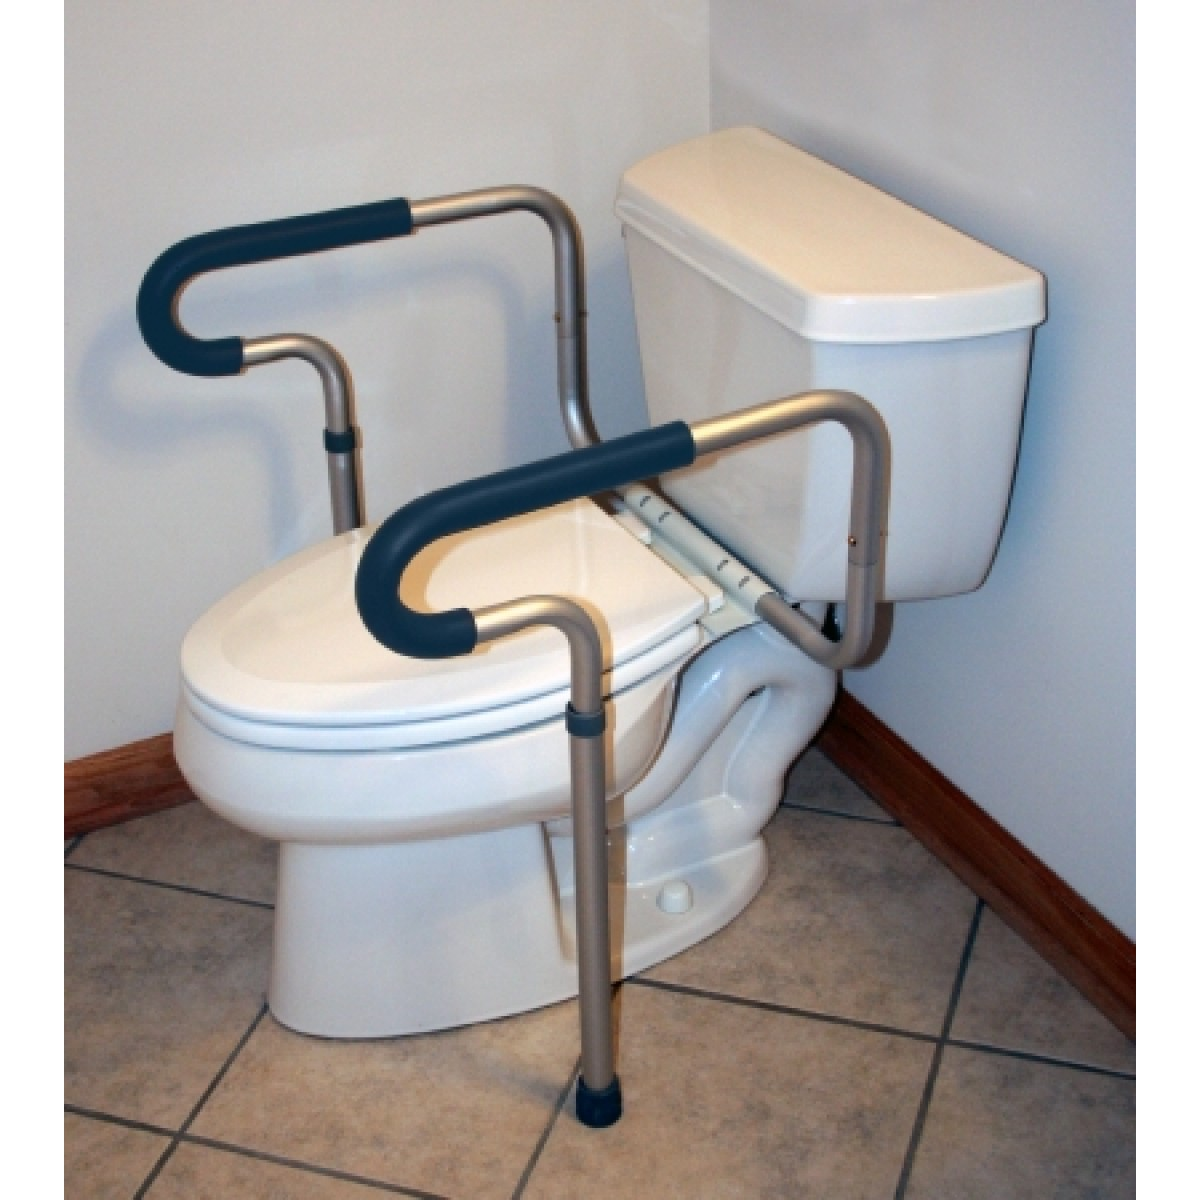 Sunmark Toilet Safety Frame 26 To 31 H Inch 133 0406